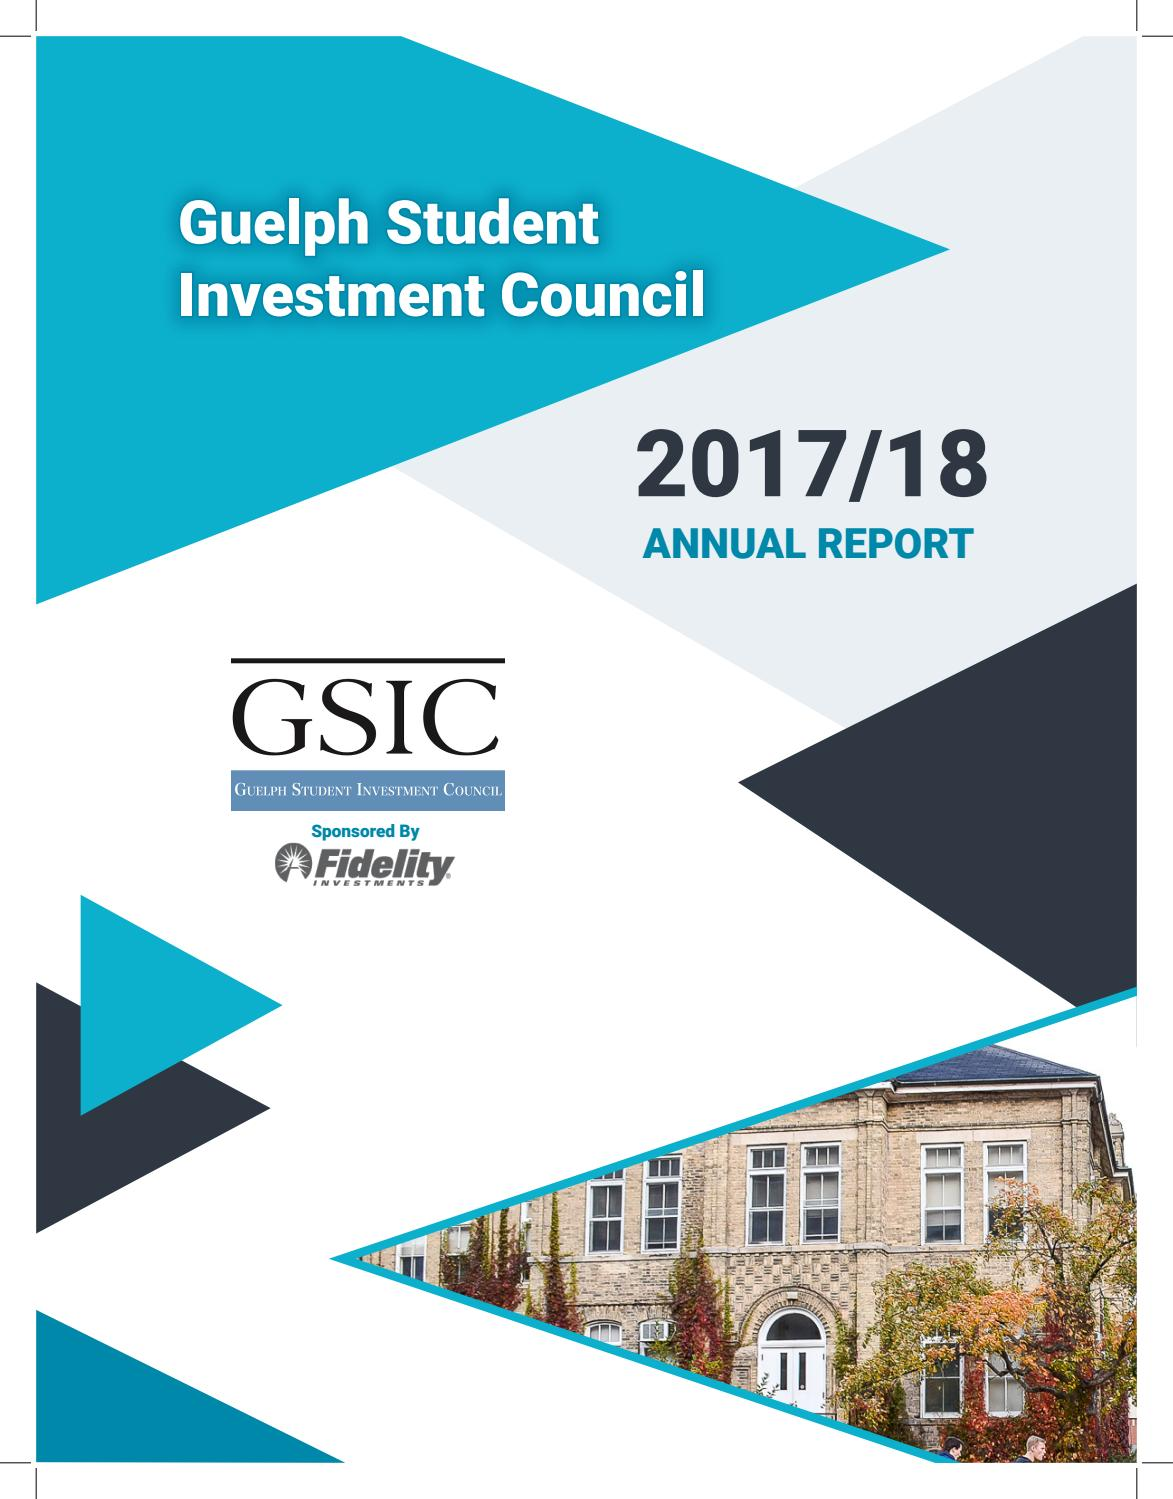 GSIC Year End Report 2017-2018 by uoguelph4 - issuu